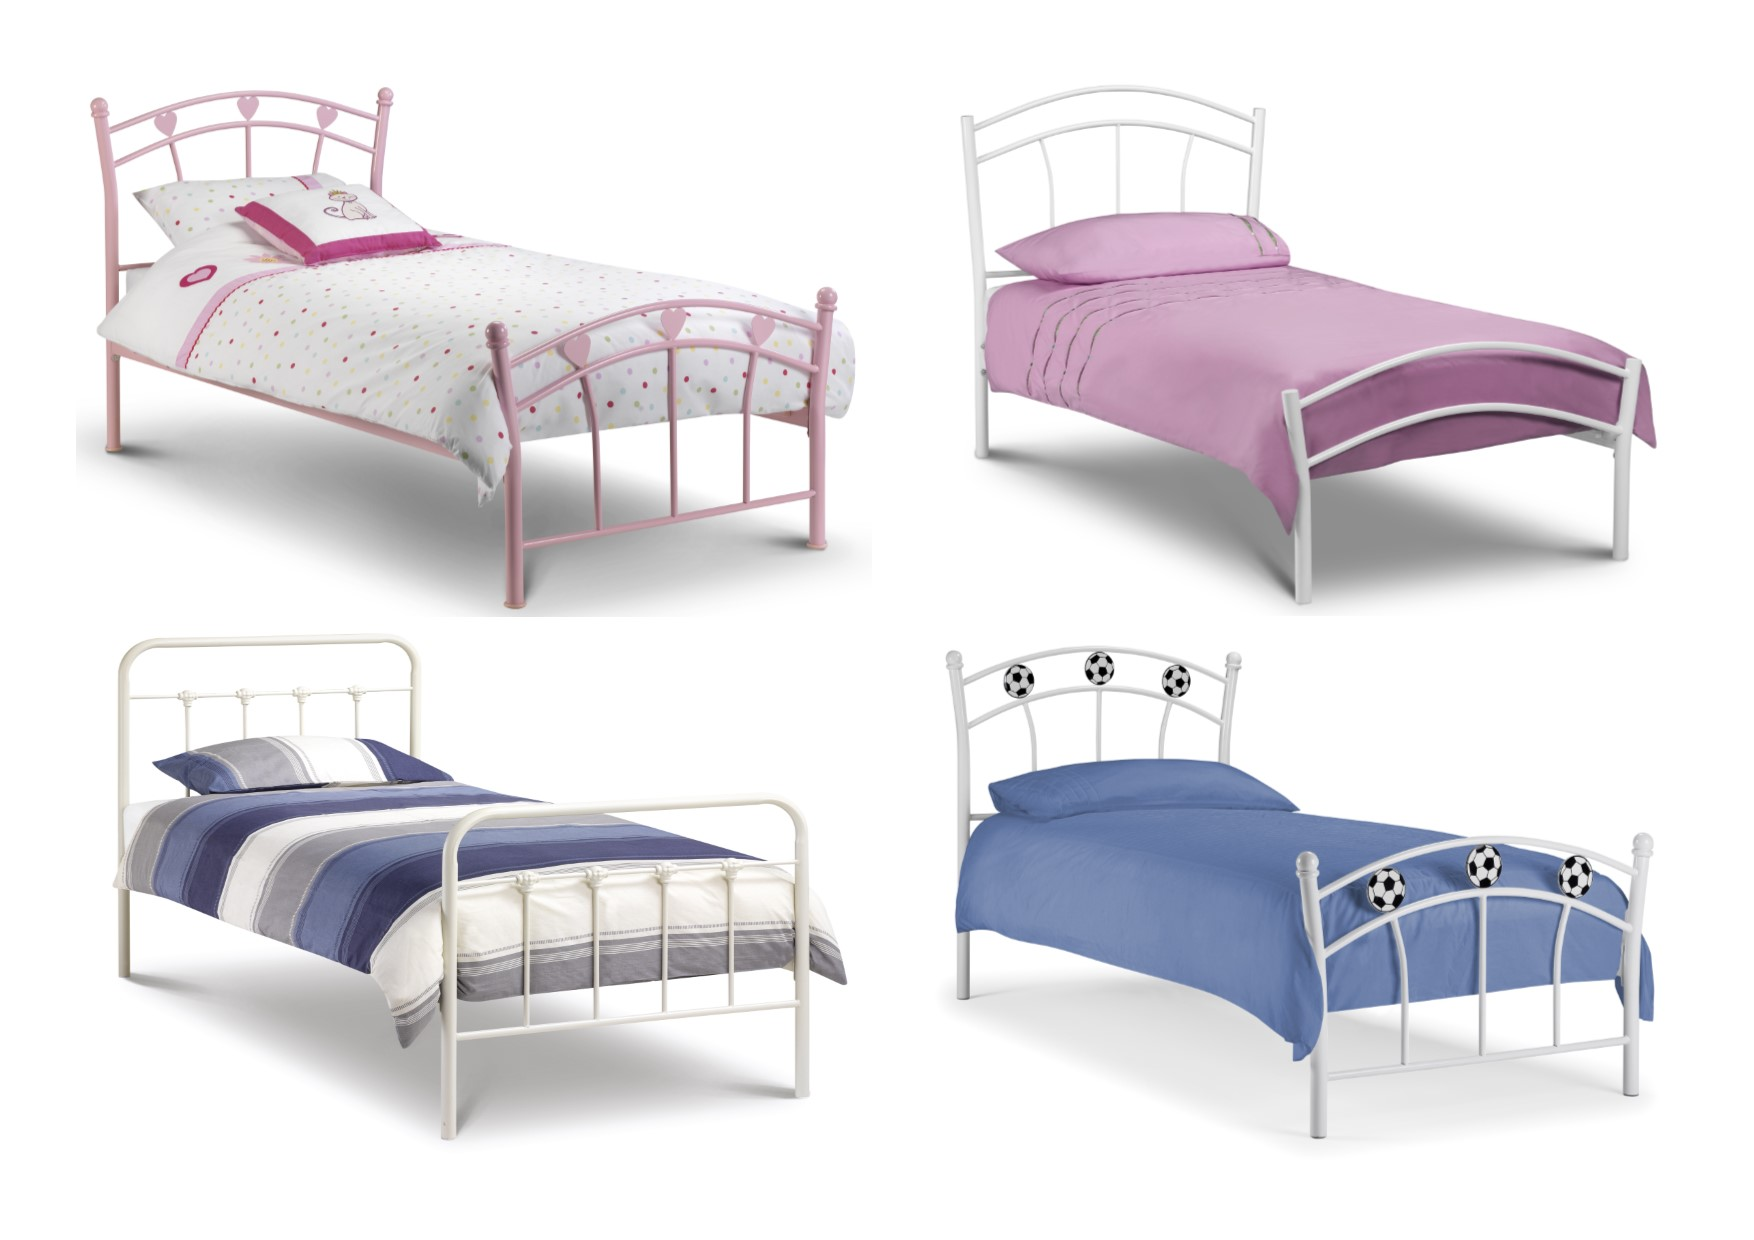 Julian Bowen Childrens Single Bed Frames Boys And Girls Pink White